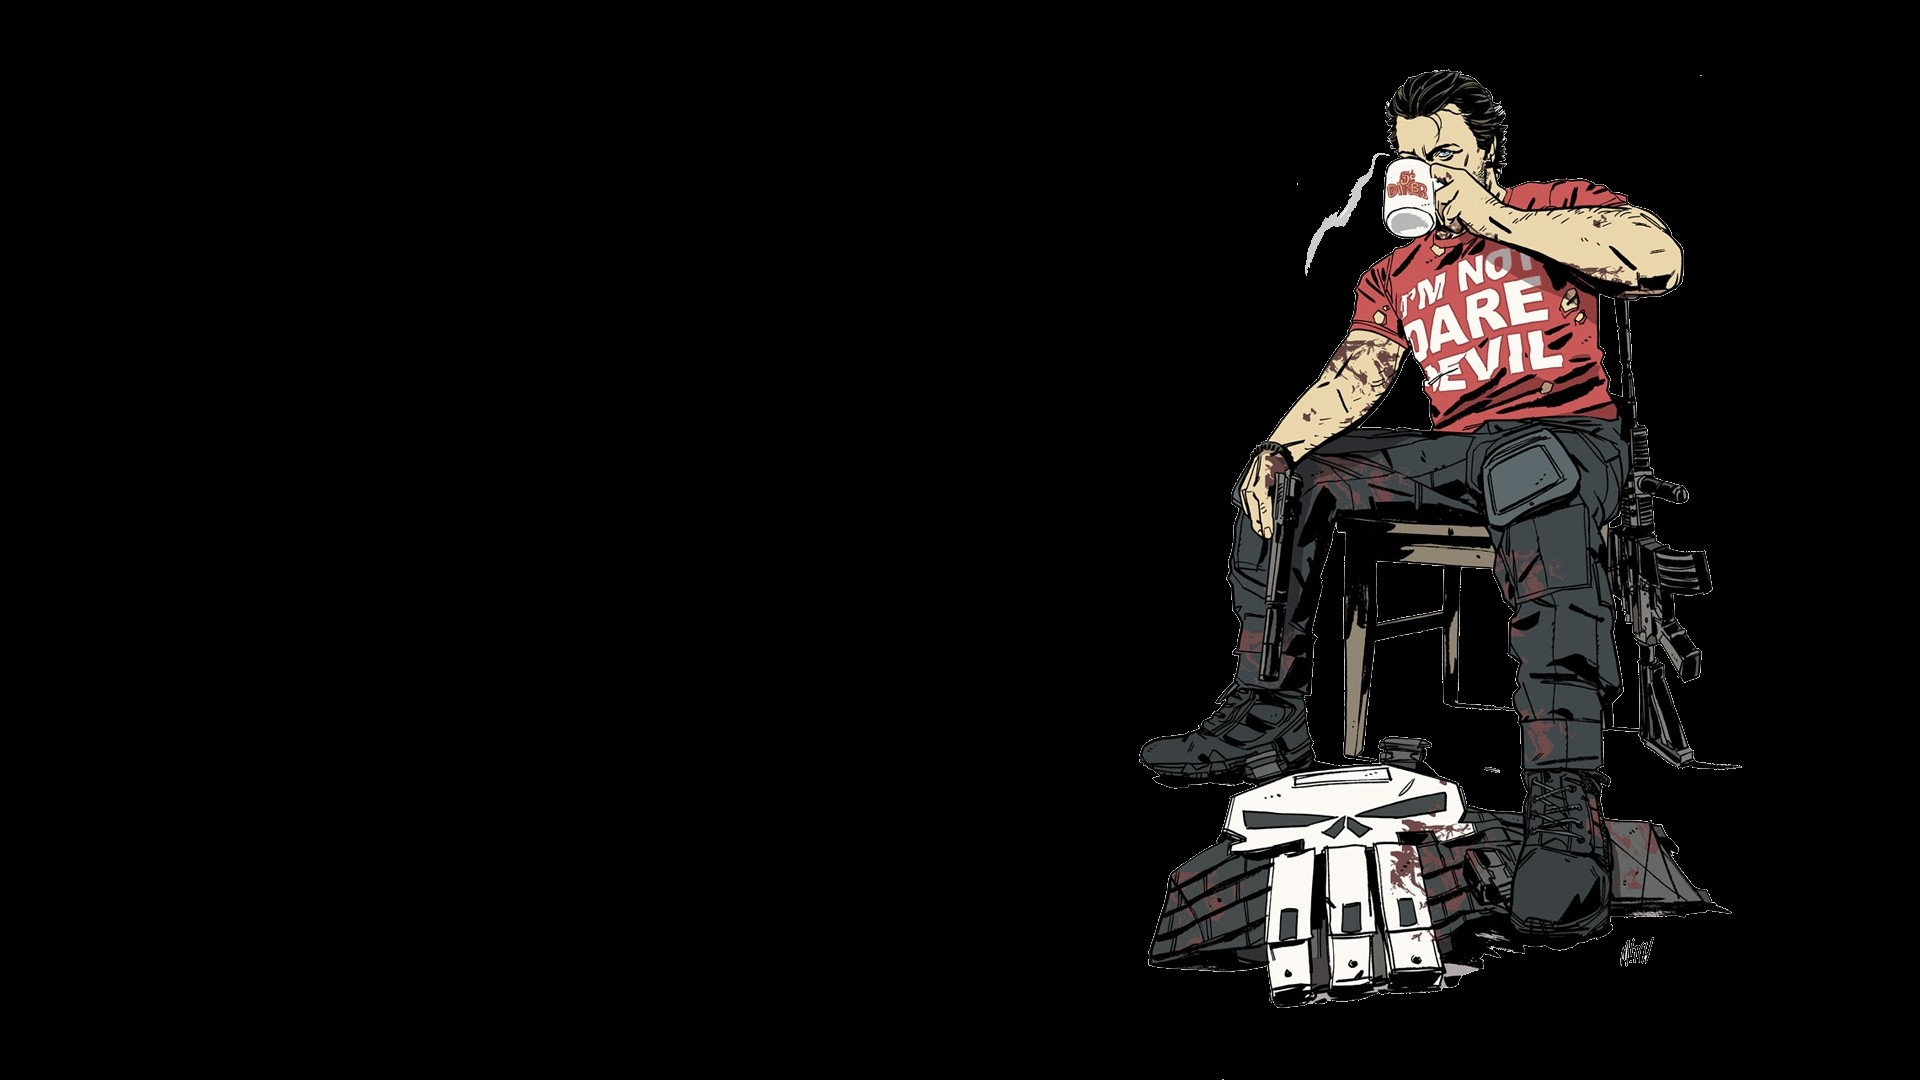 1920x1080 The Punisher Computer Wallpapers, Desktop Backgrounds |  | ID .